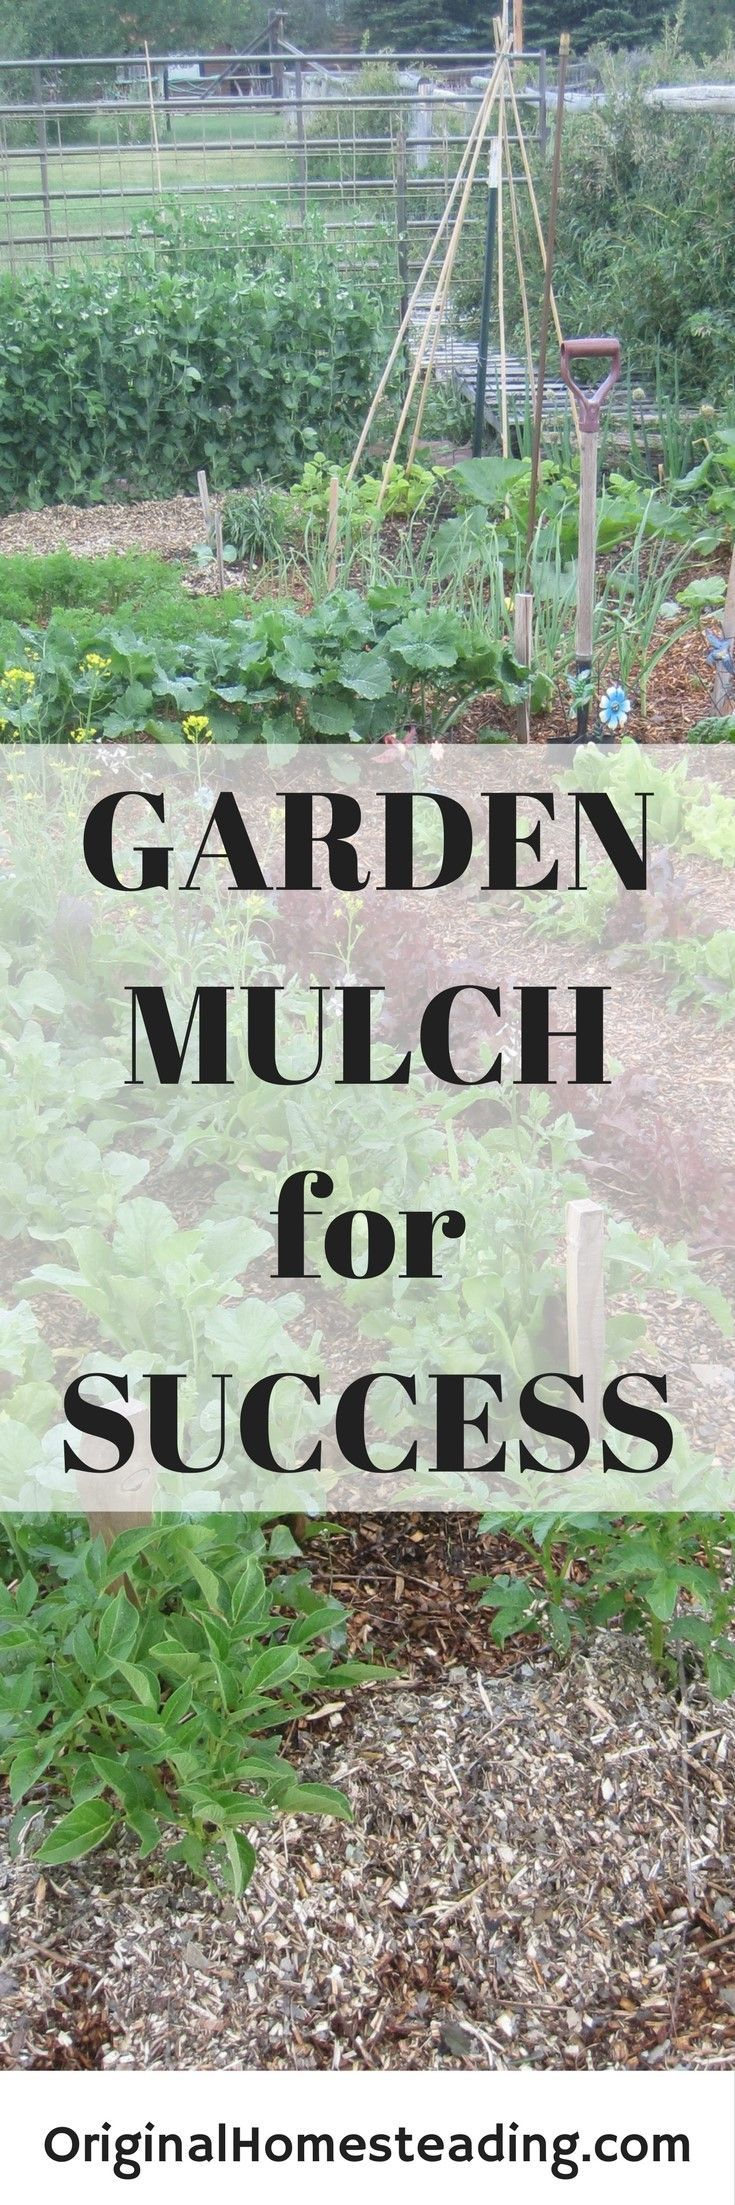 Mulch your Garden for Success. Mulch helps suppress weeds, retain moisture and increase yields.....give it a try!!!